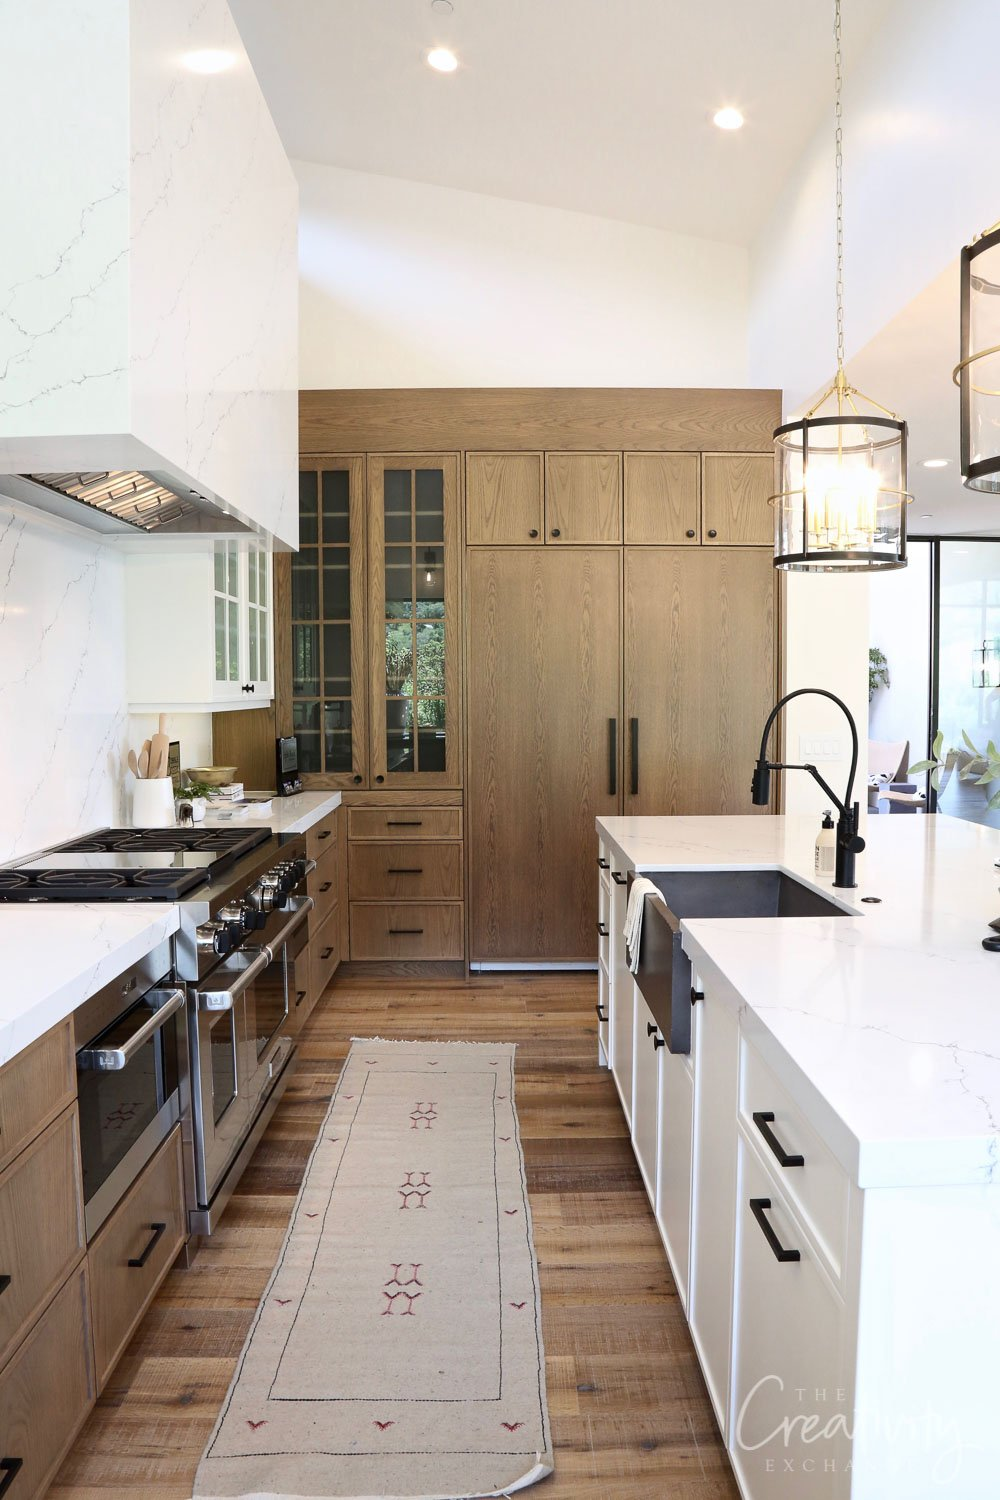 Kitchen with oak cabinetry